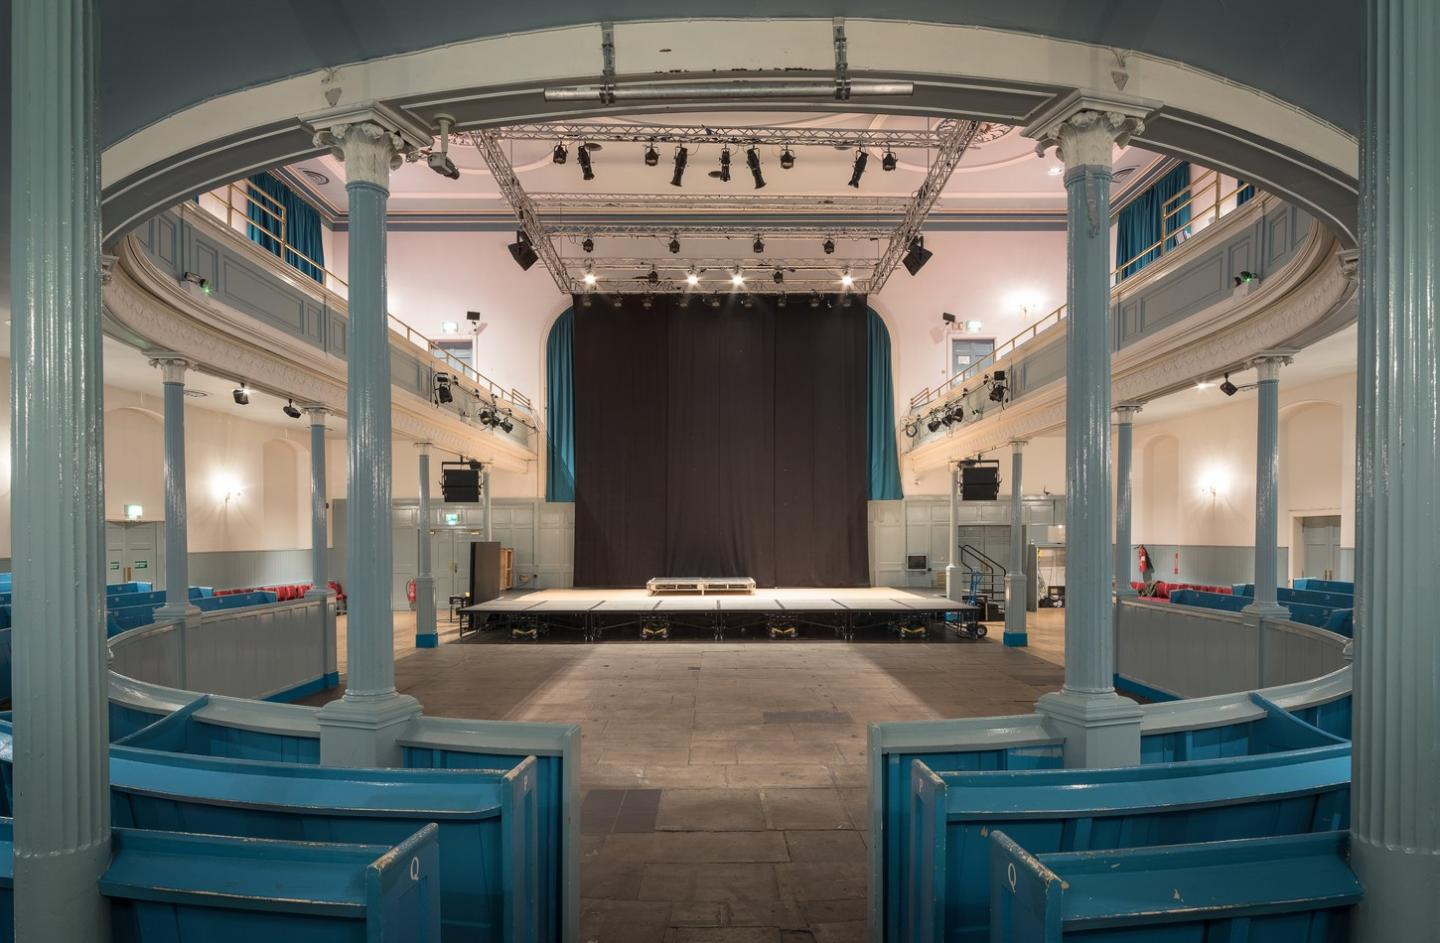 The Queen's Hall auditorium from stalls to stage laid out for standing gig